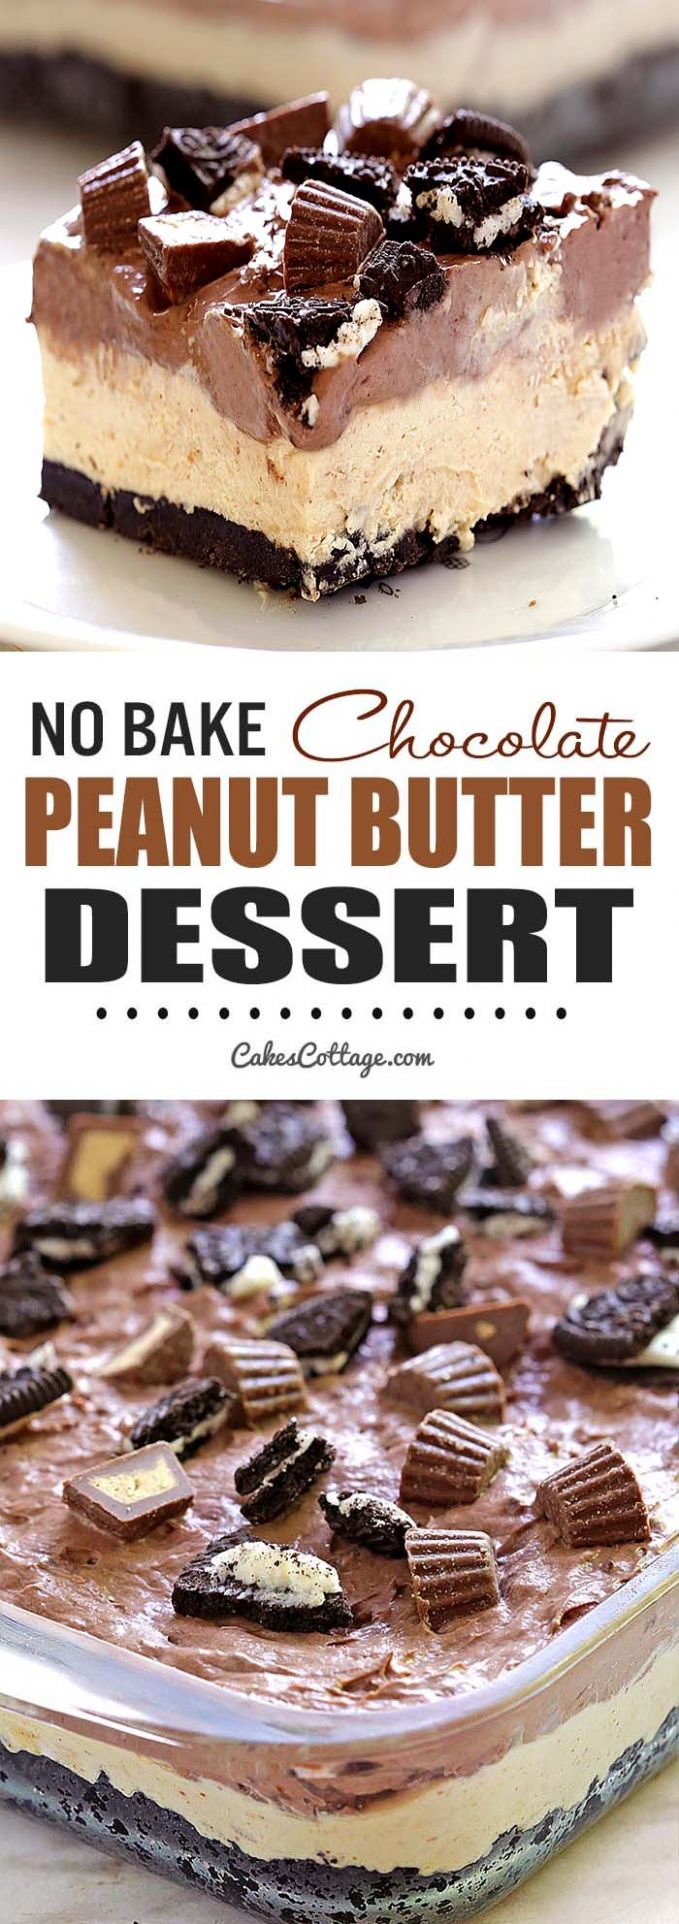 No Bake Chocolate Peanut Butter Dessert - Recipes Desserts With Peanut Butter